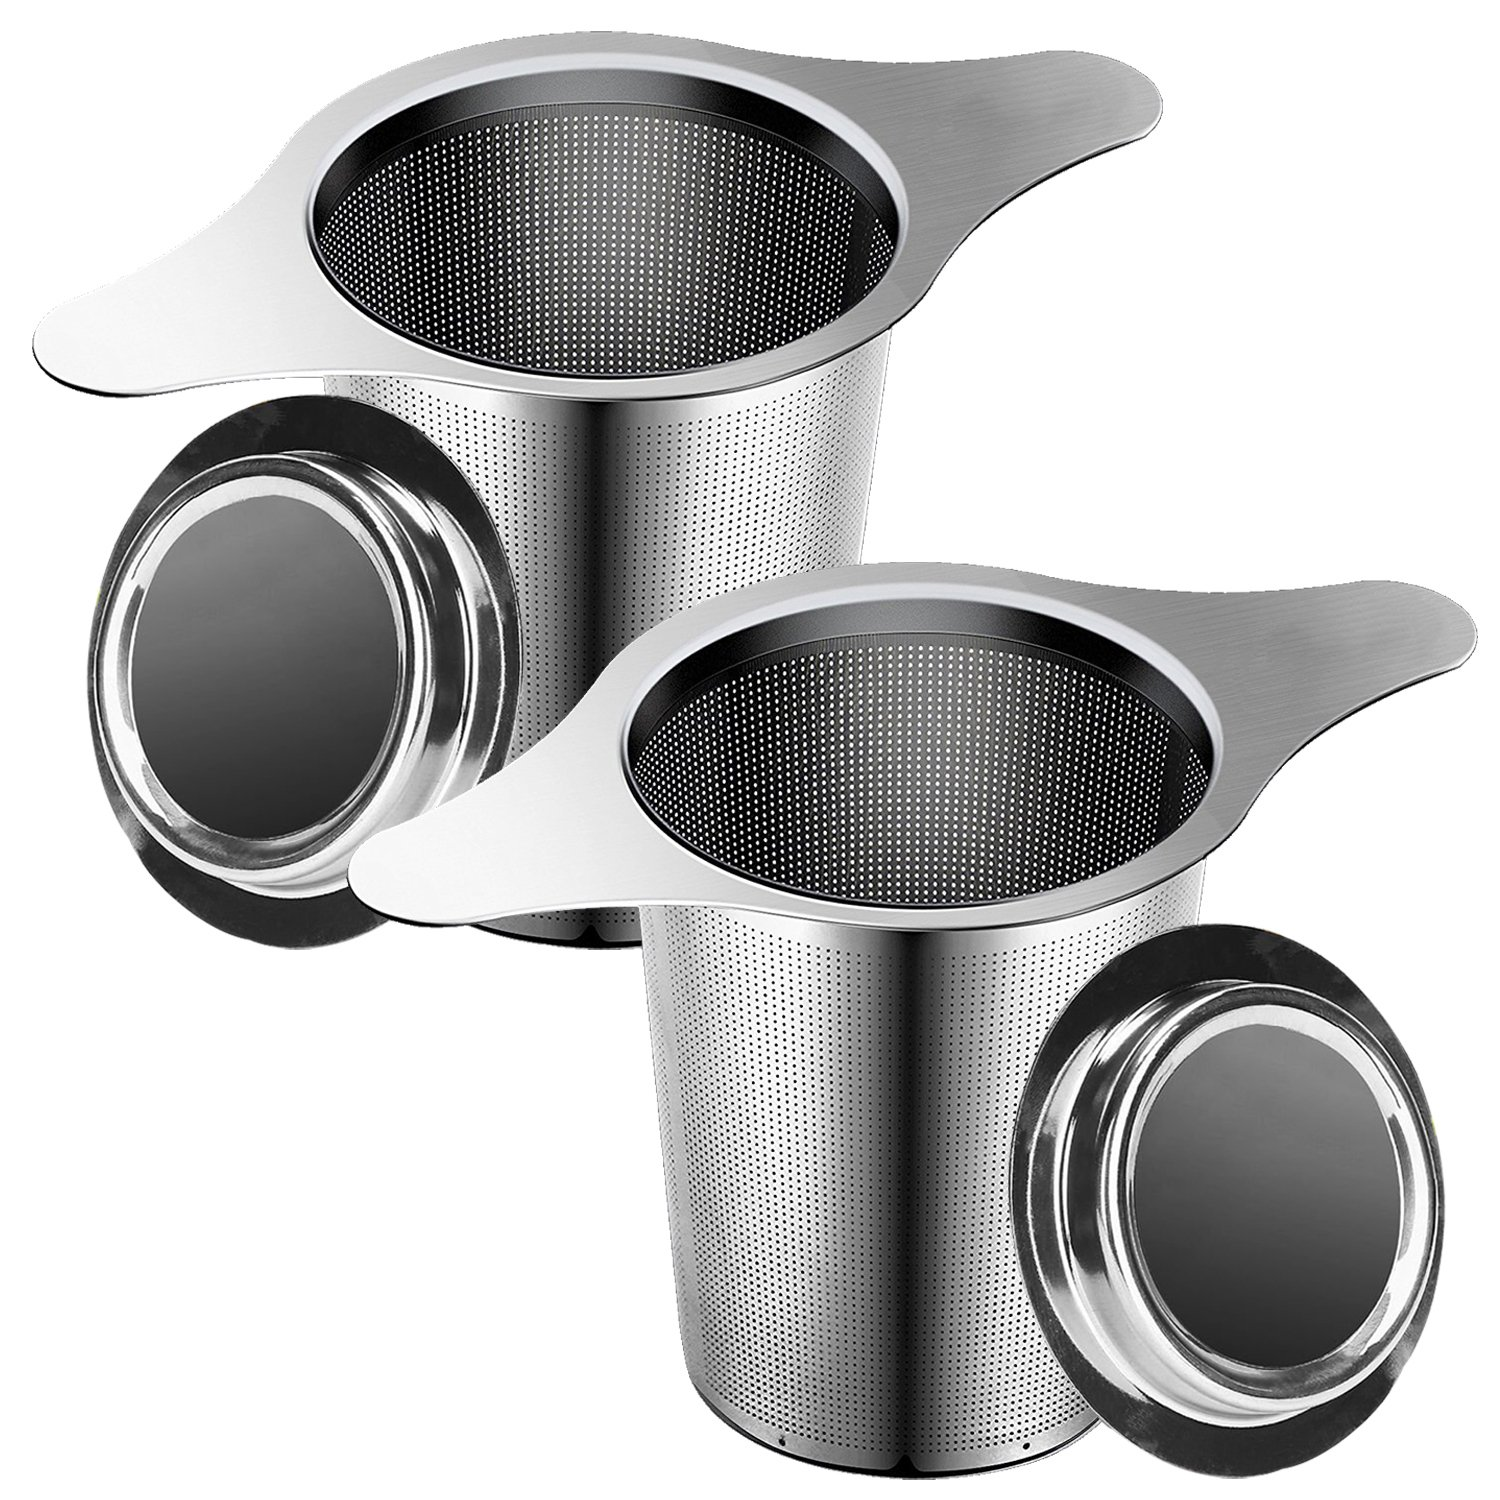 Tea Infuser, 304 Stainless Steel Water Filter Tea Strainer with Double Handles for Hanging on Teapots, Mugs, Cups to steep Loose Leaf Tea and Coffee Maker-2 Packs